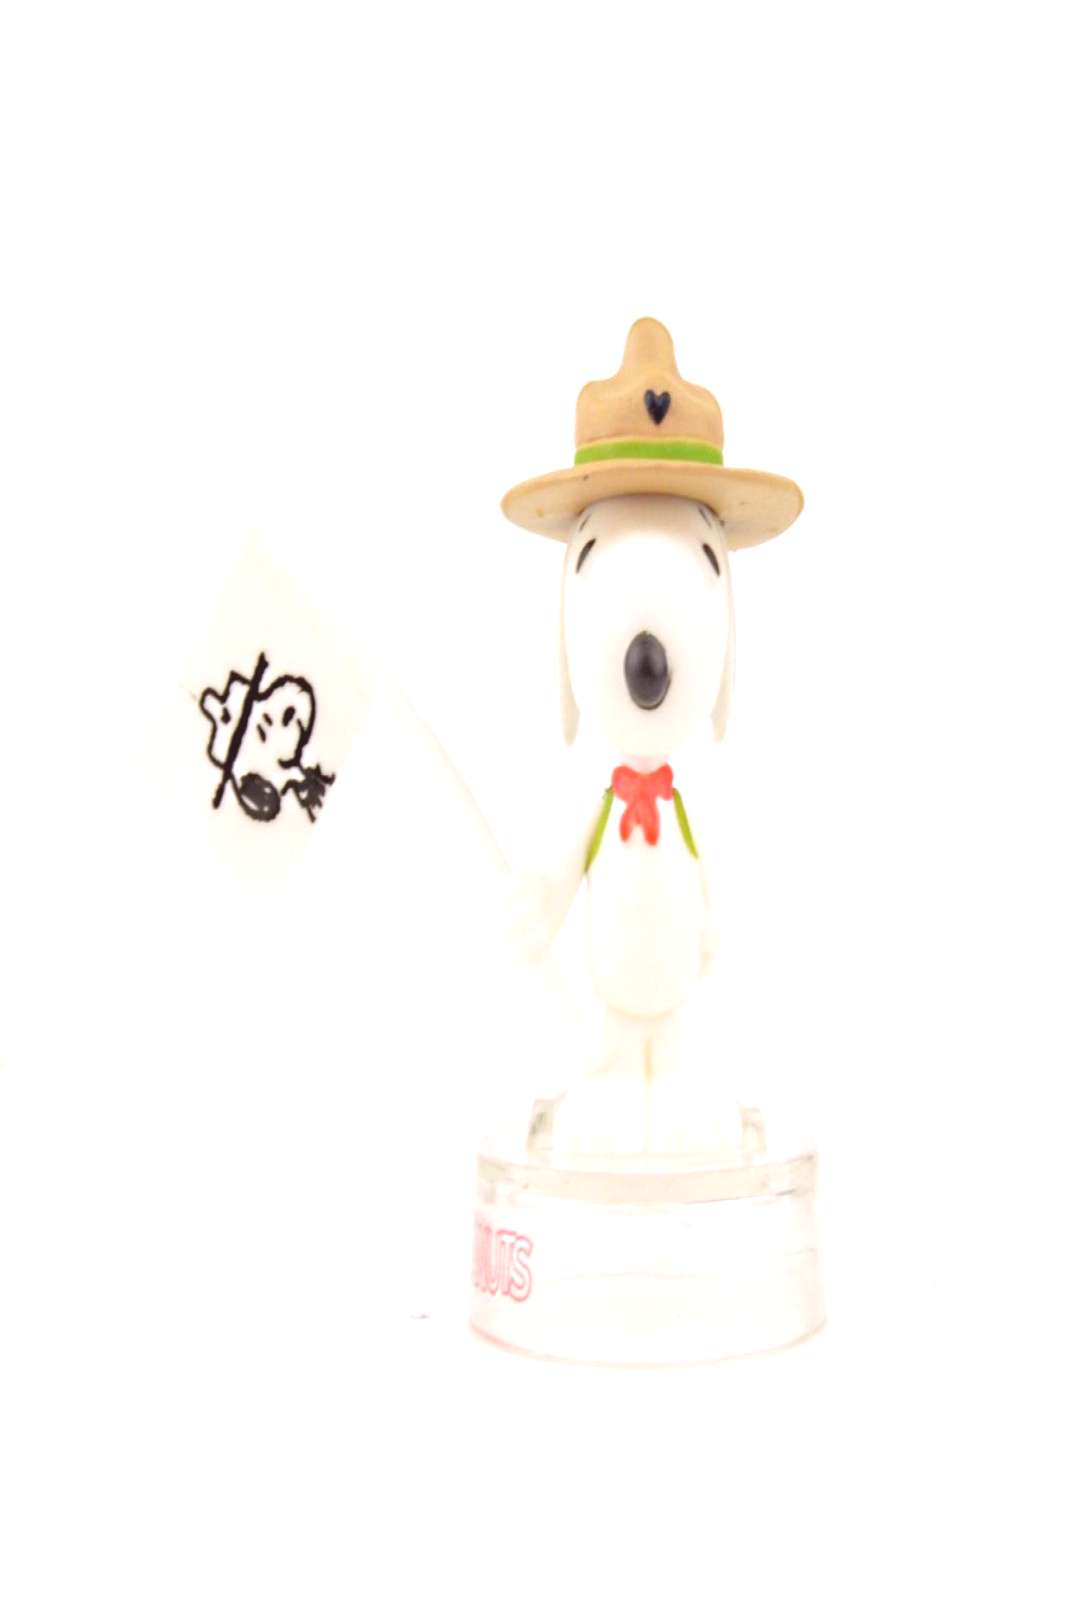 Peanuts Snoopy Figure Collection Takara Tomy 2-Inch Figure - Suppertime